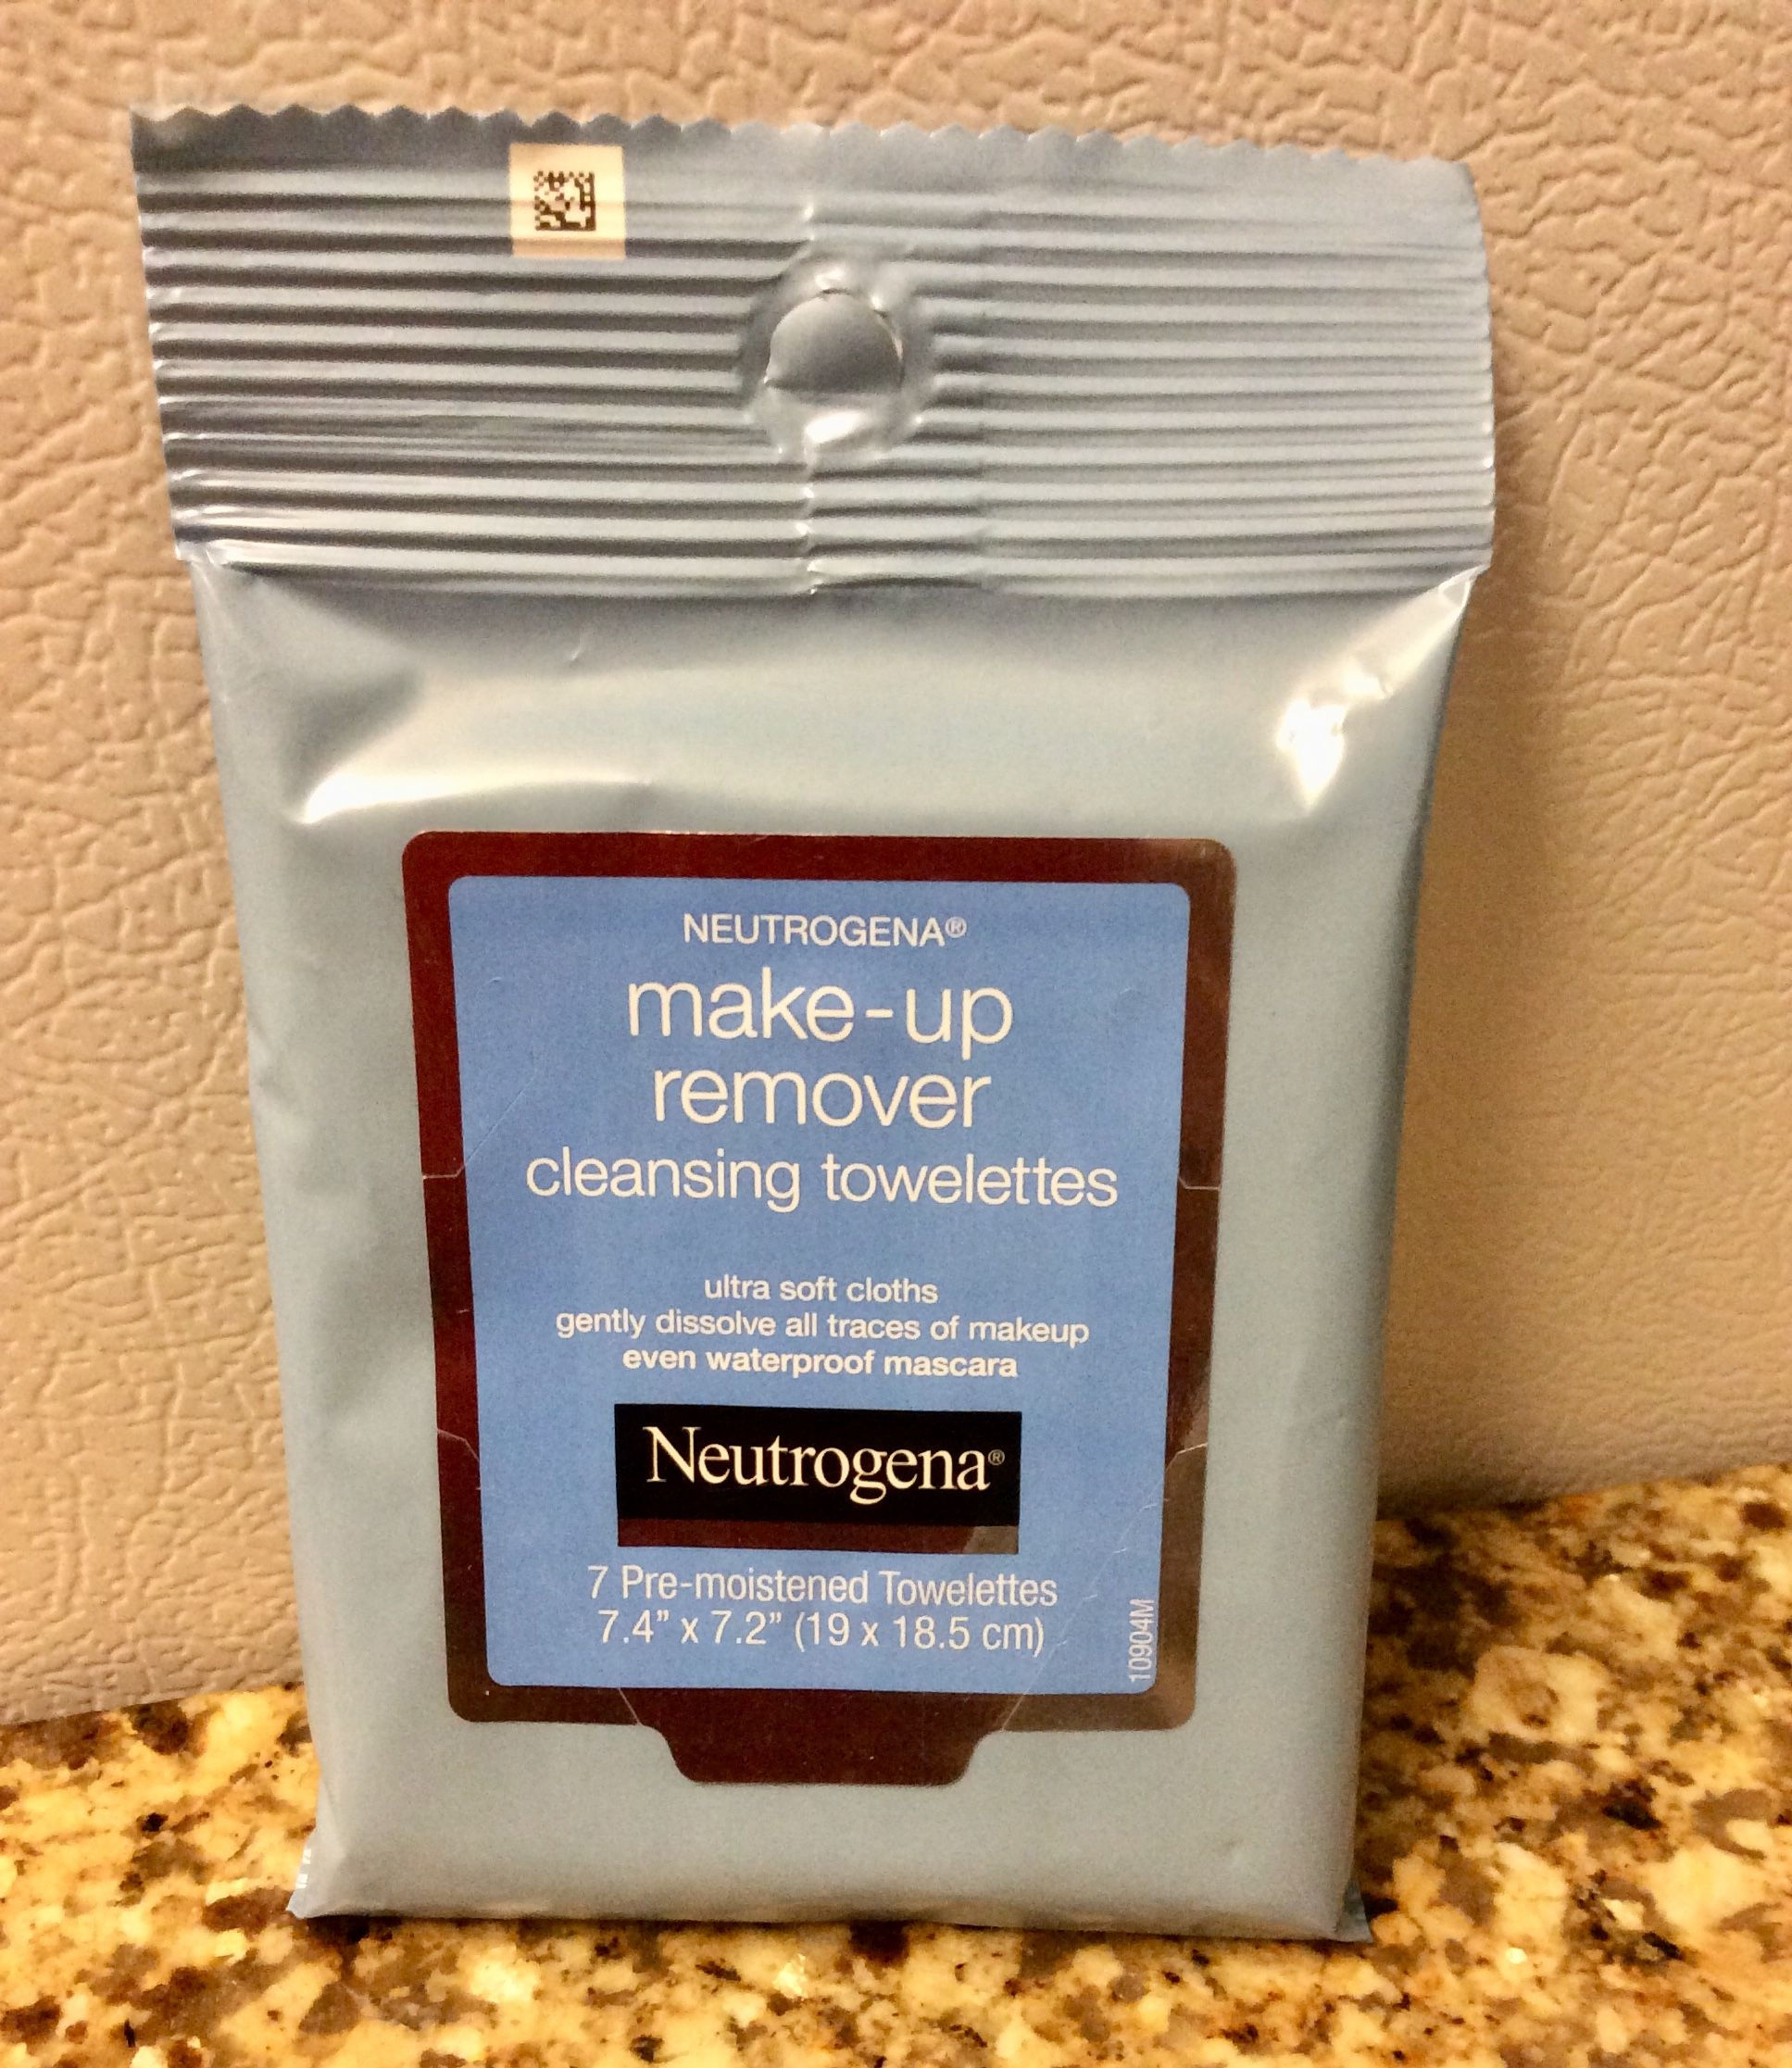 Neutrogena Trial Size Make Up Remover Cleansing Towelettes